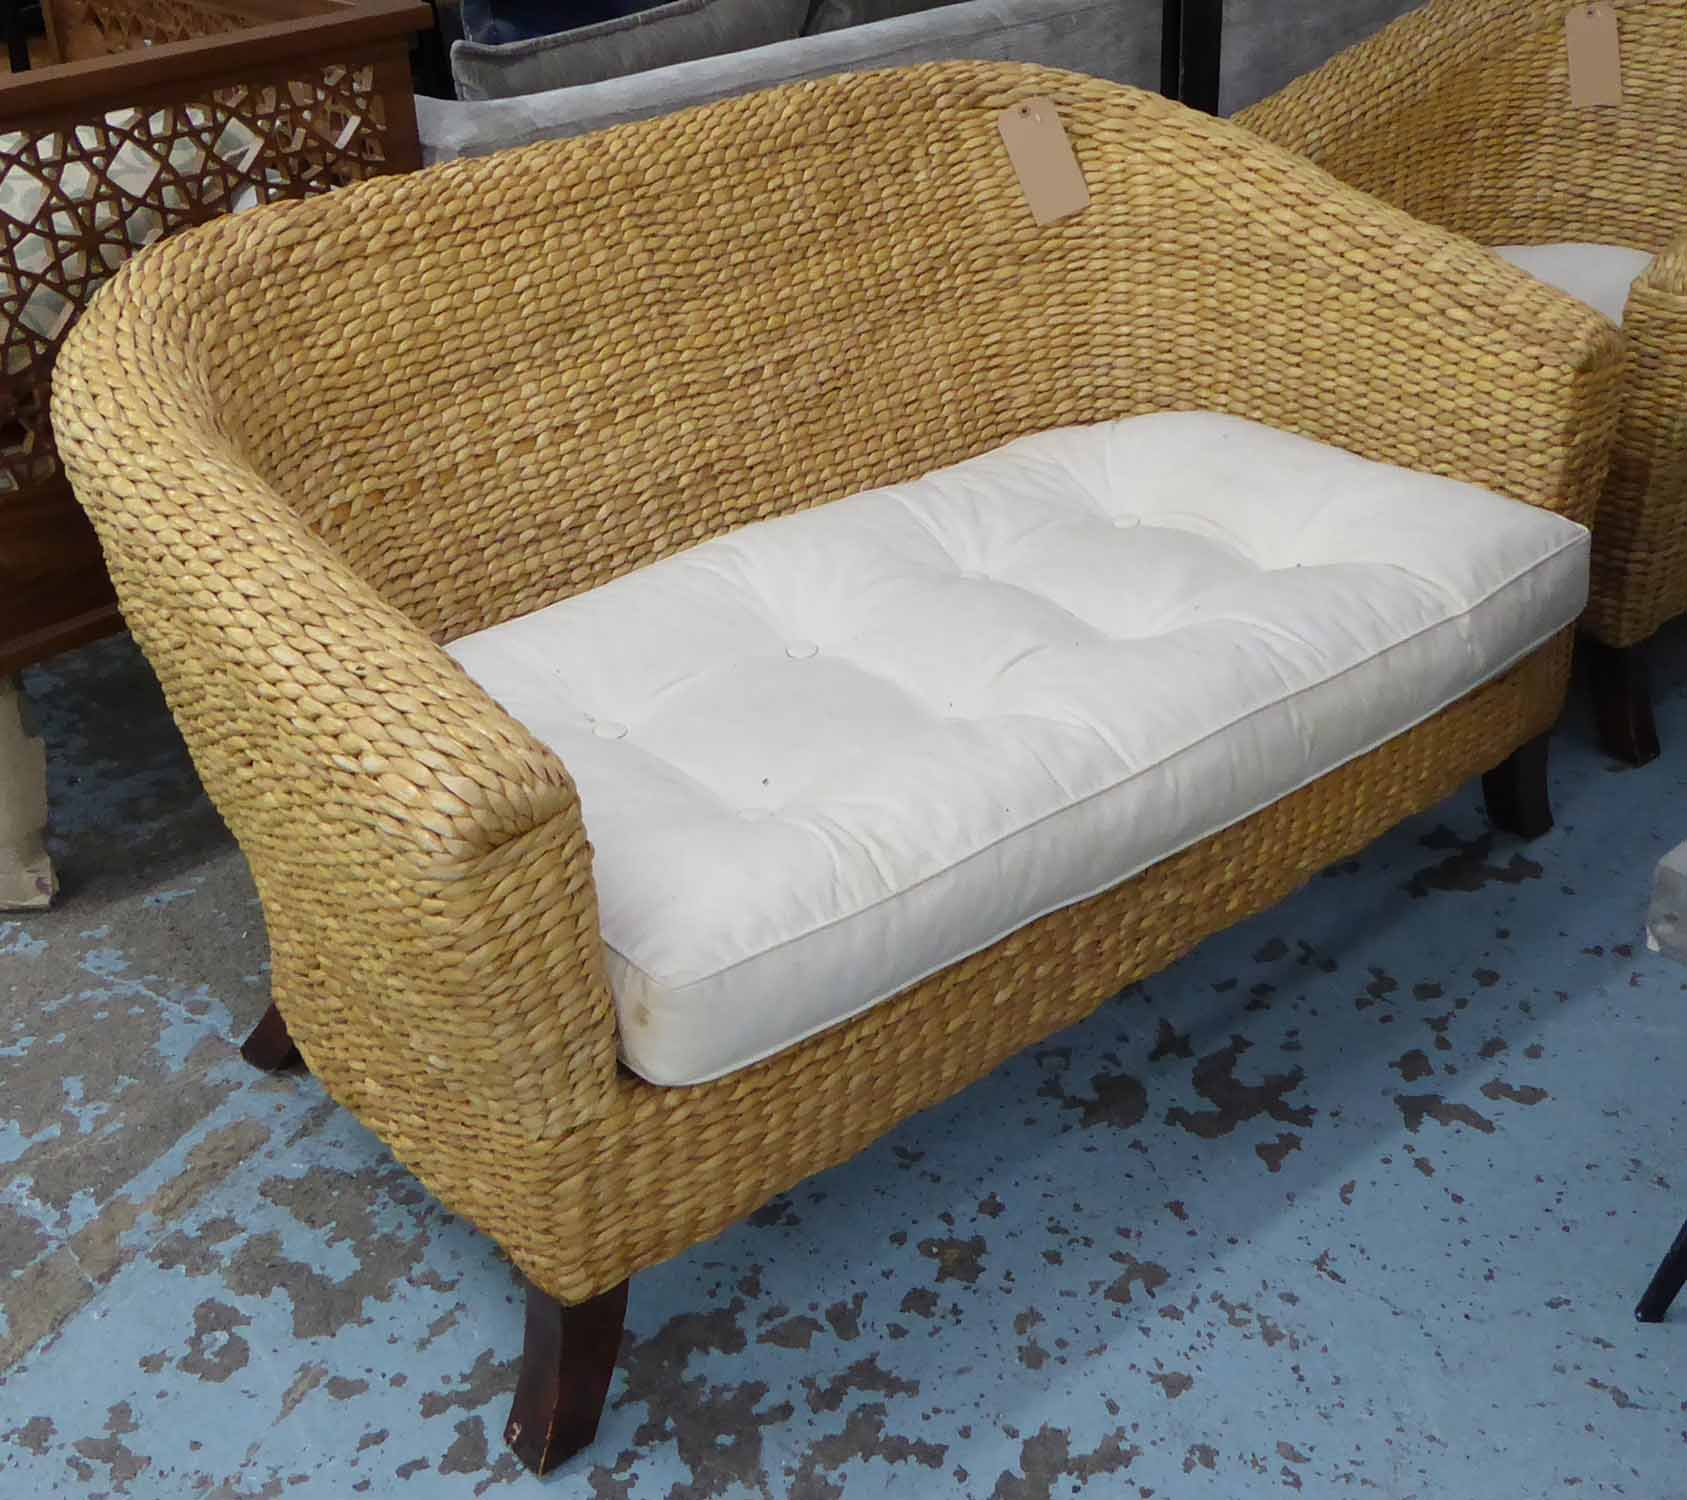 CONSERVATORY WICKER SOFA, rounded back on splayed legs, with cushion and chair to match.